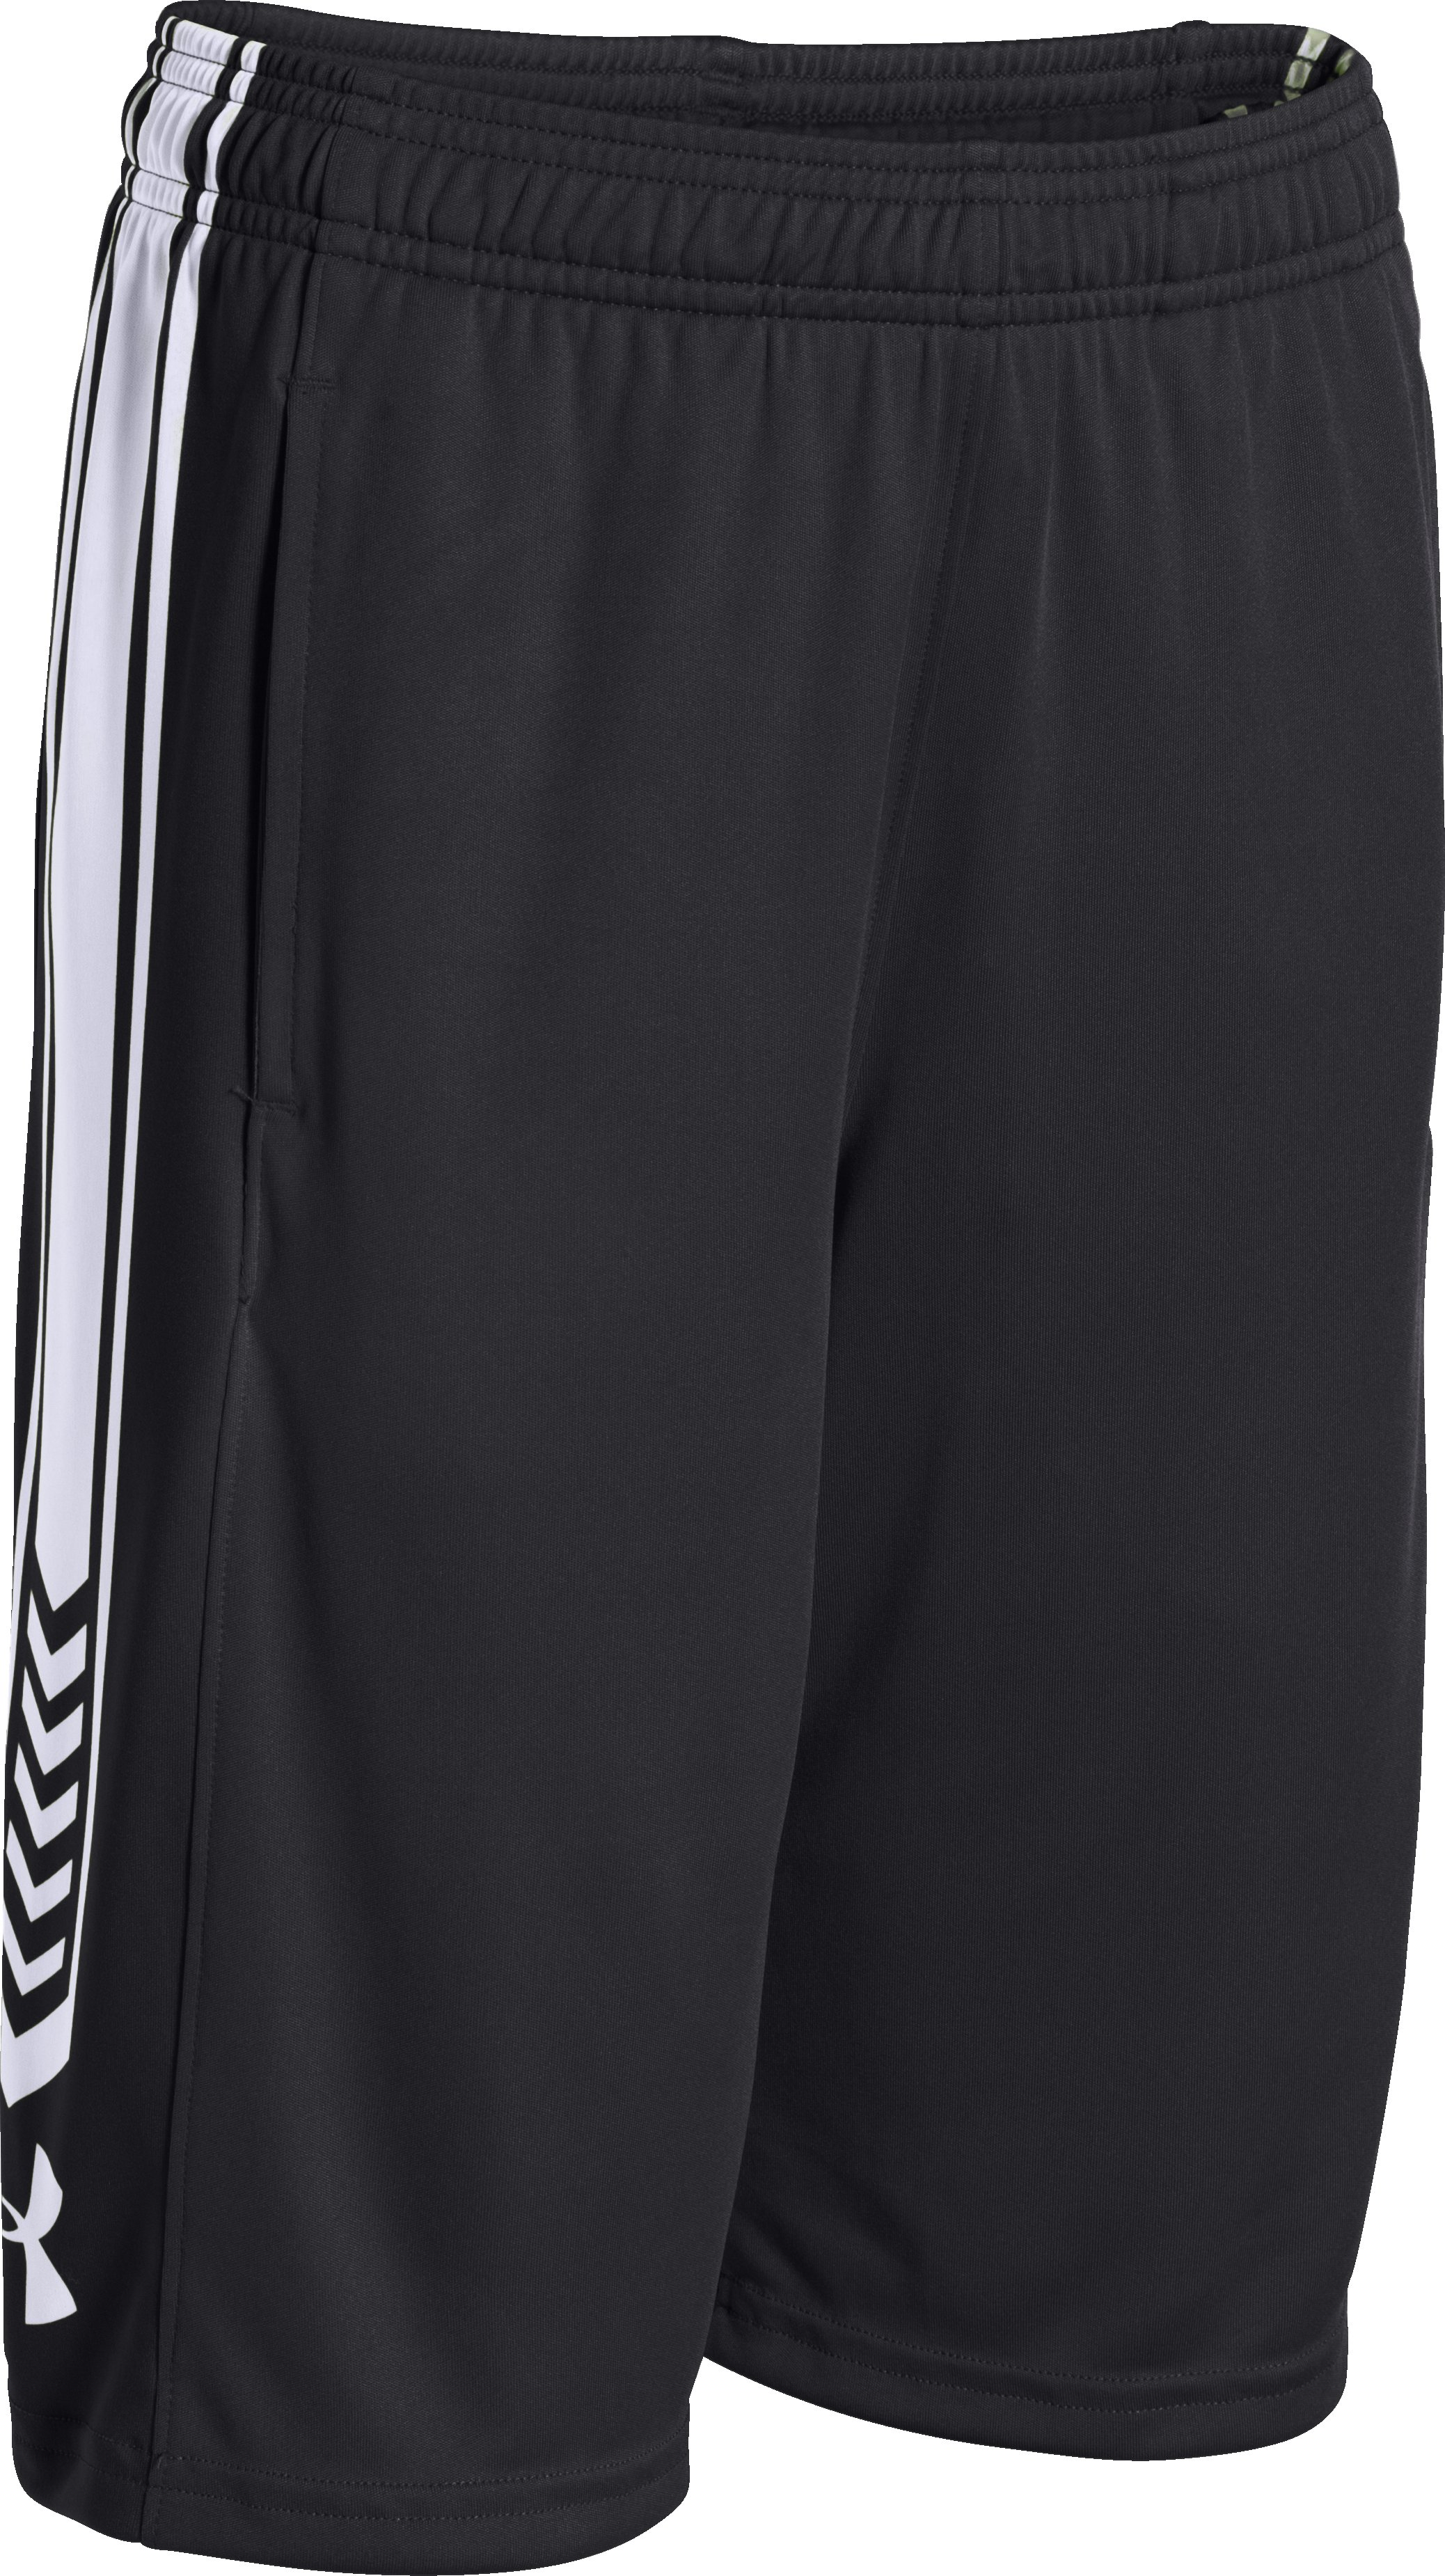 Boys' UA Disruptor Shorts, Black